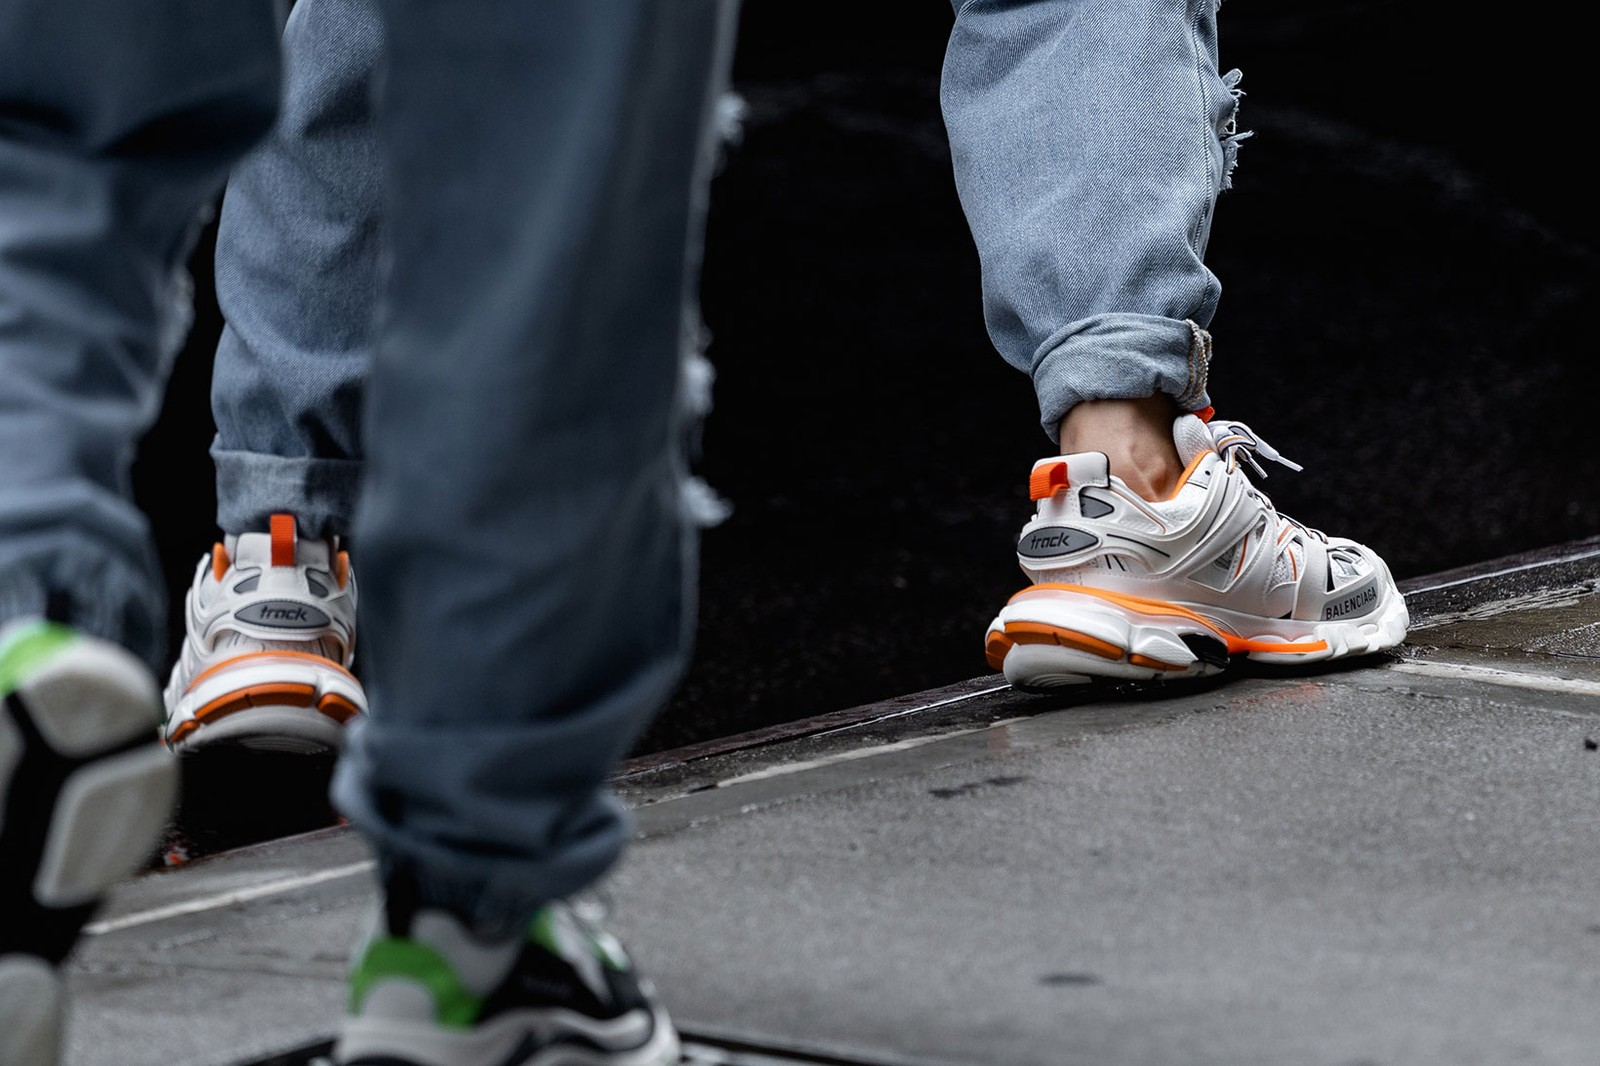 best street style sneakers new york fashion week nyfw nike adidas comme des garcons sacai shox yeezy boost 700 balenciaga track converse pro leather ss20 spring summer 2020